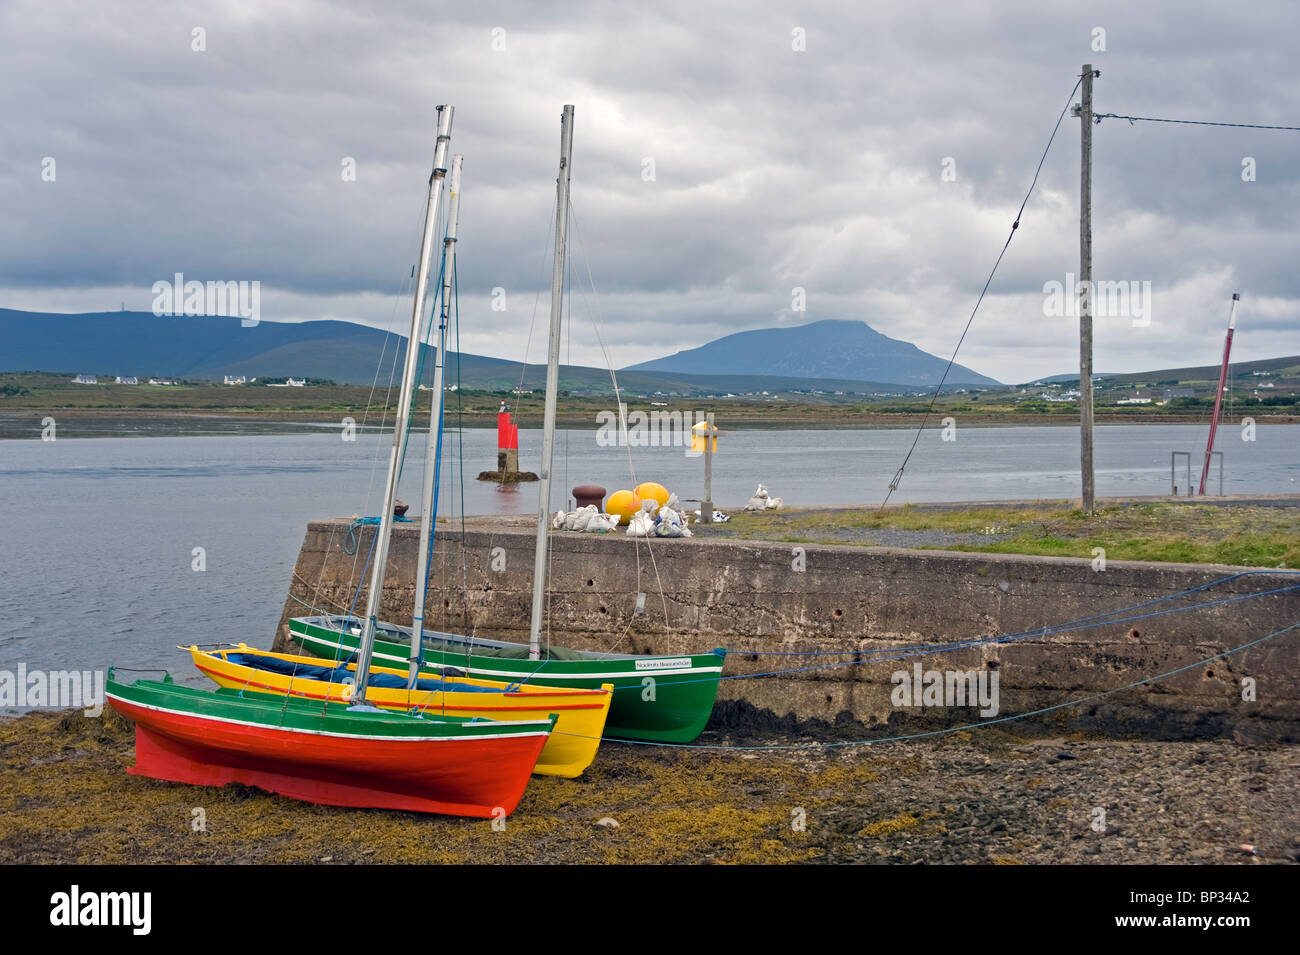 Drontheims at Achill Sound, County Mayo, Ireland. - Stock Image